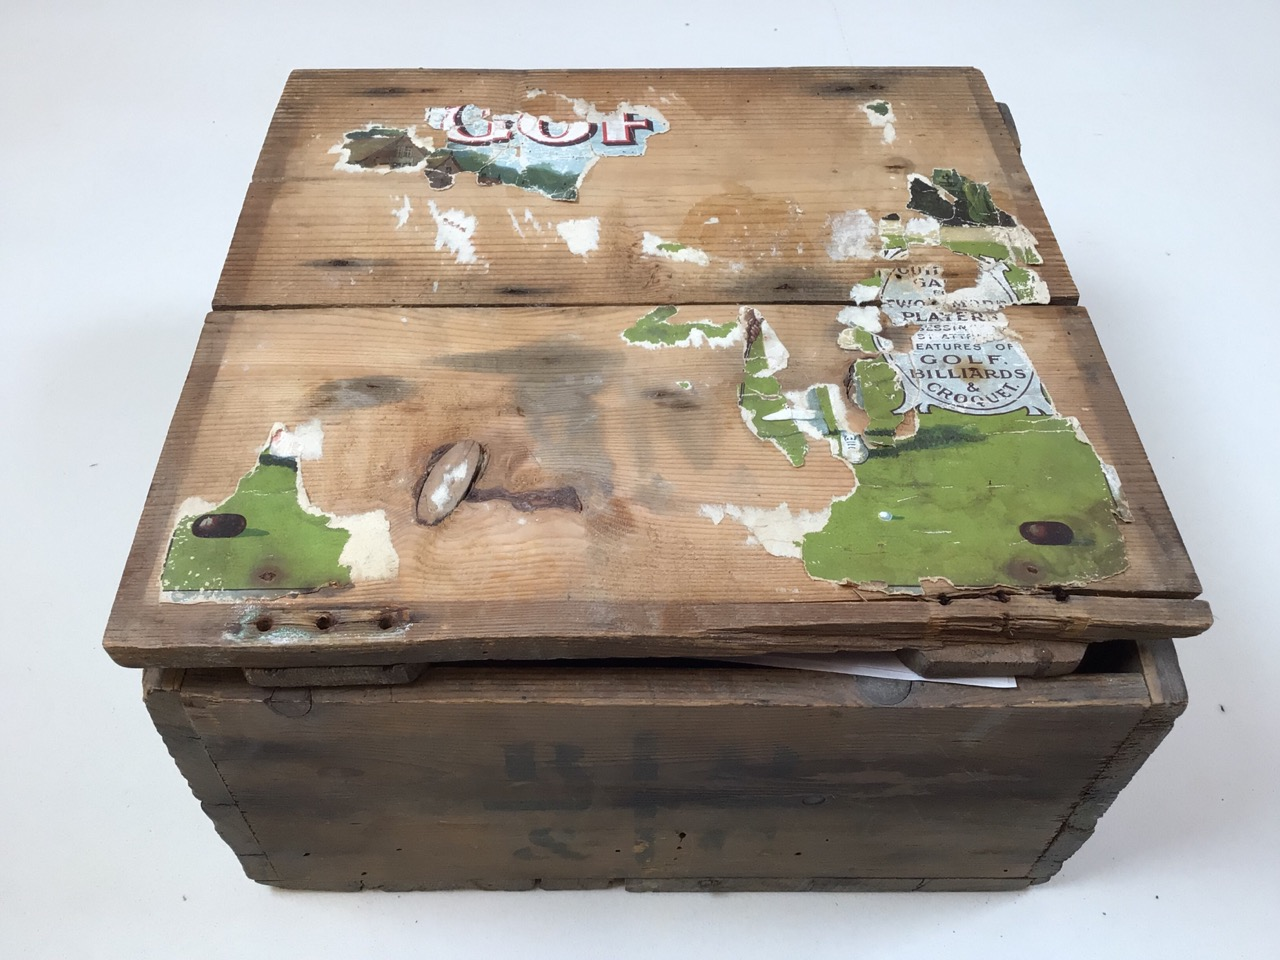 A boxed set Gofky garden game with elements of croquet and billiards. Box size W:28cm x D:28cm x H: - Image 5 of 6